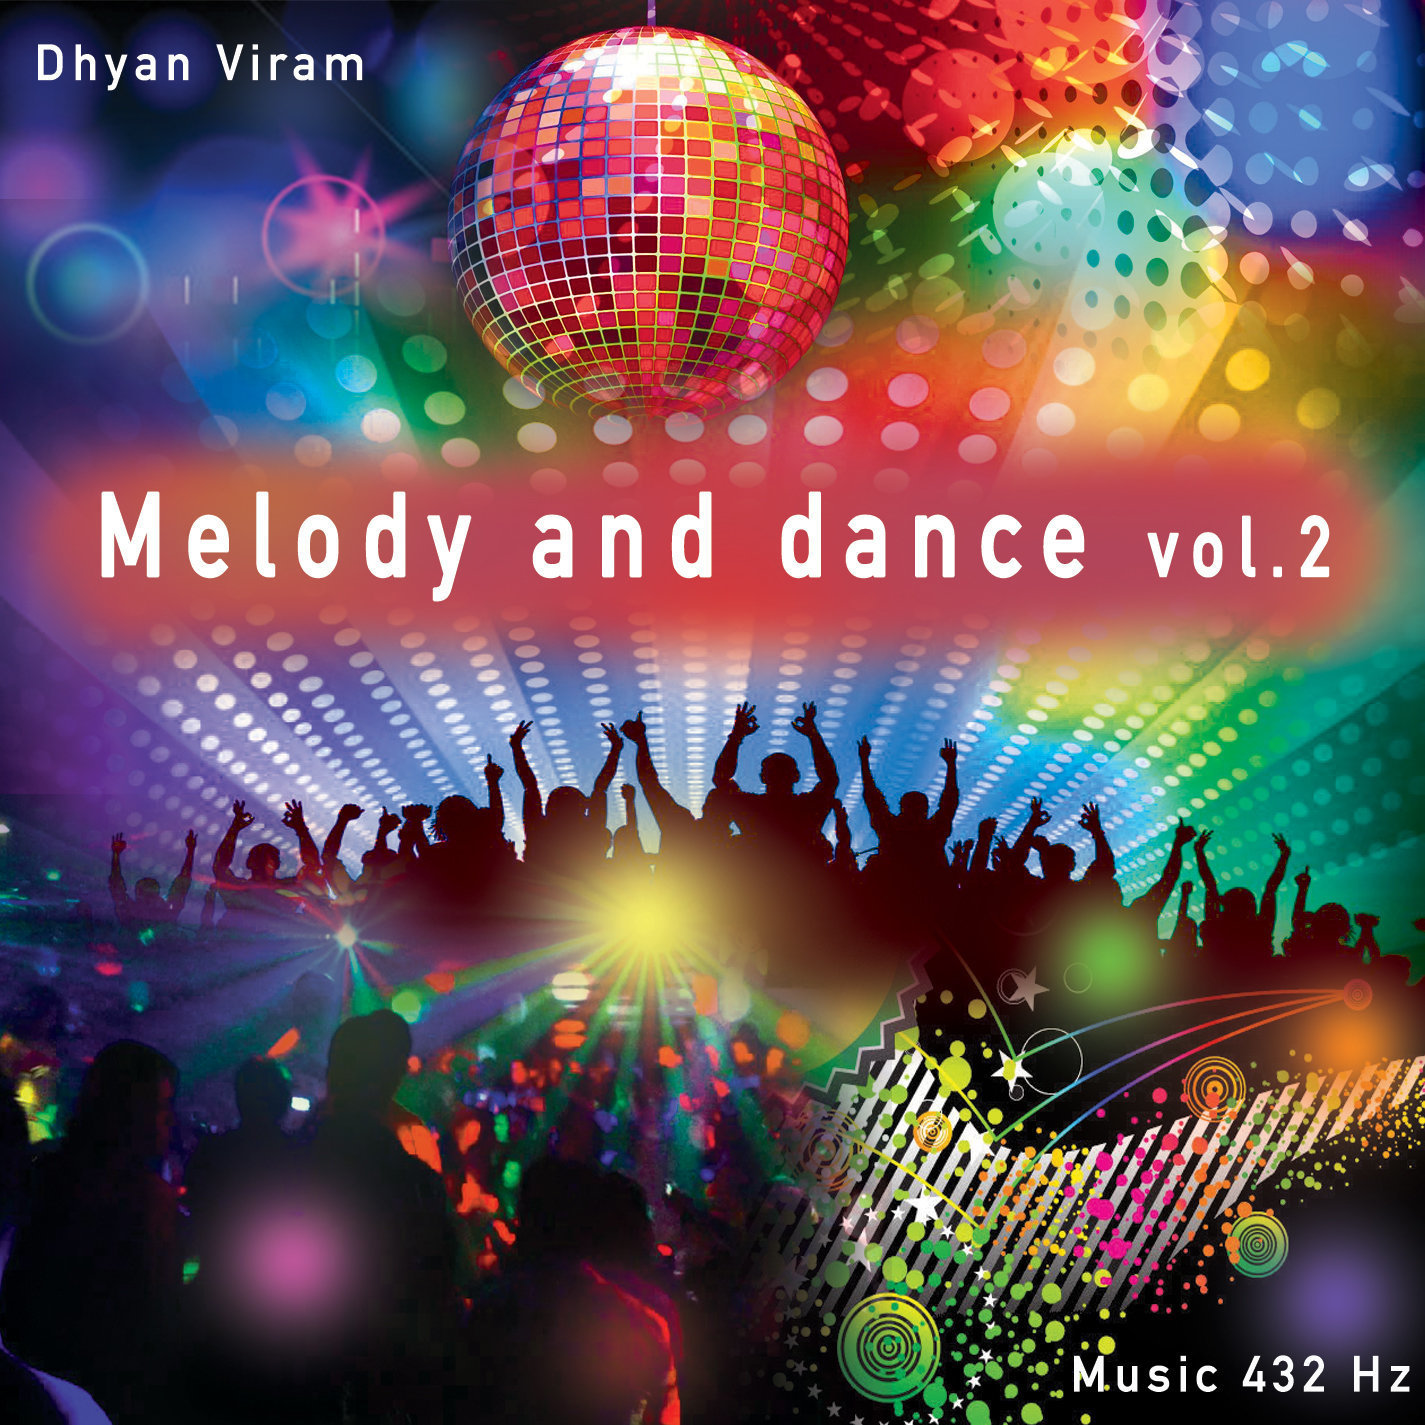 Melody and dance vol. 2